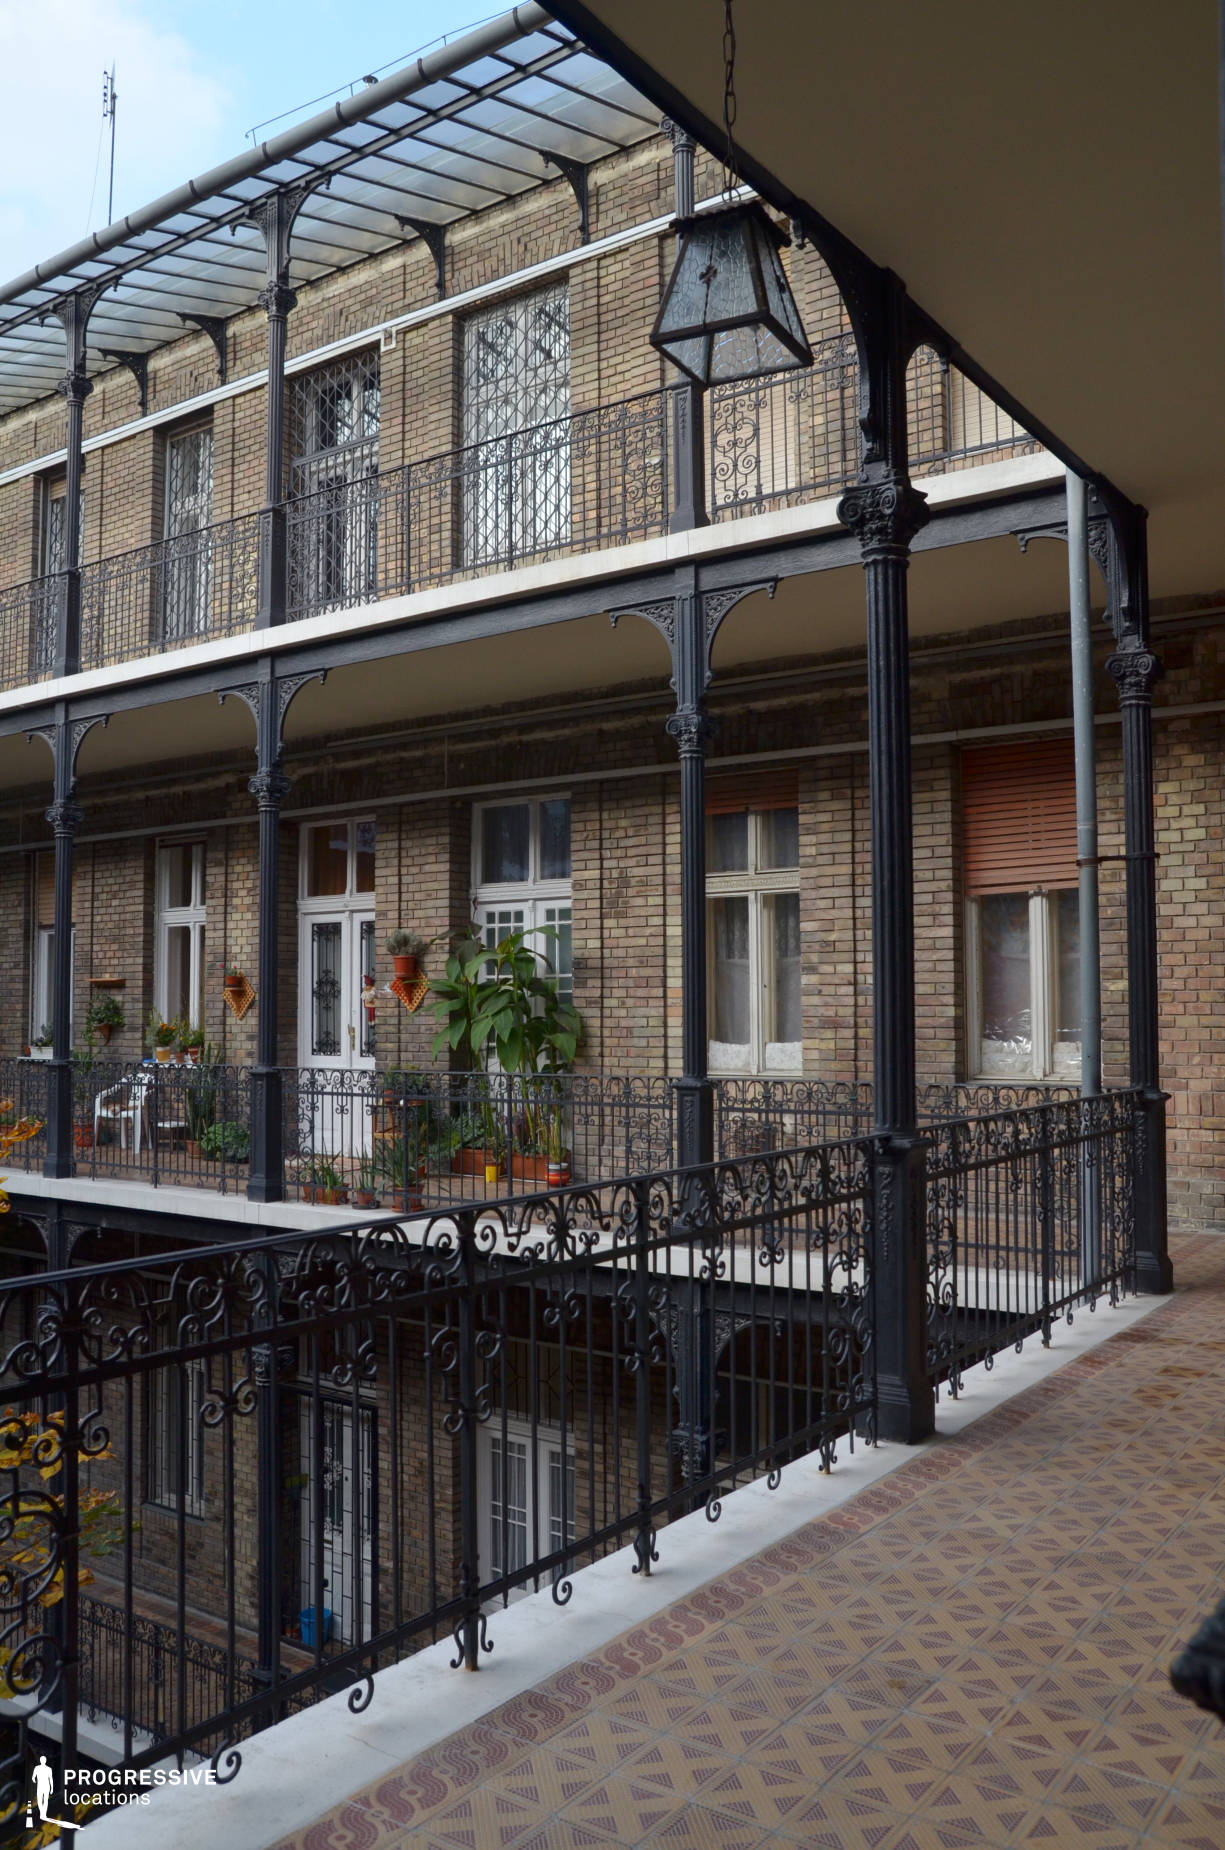 Locations in Budapest: Cast Iron Courtyard, Vaci Street